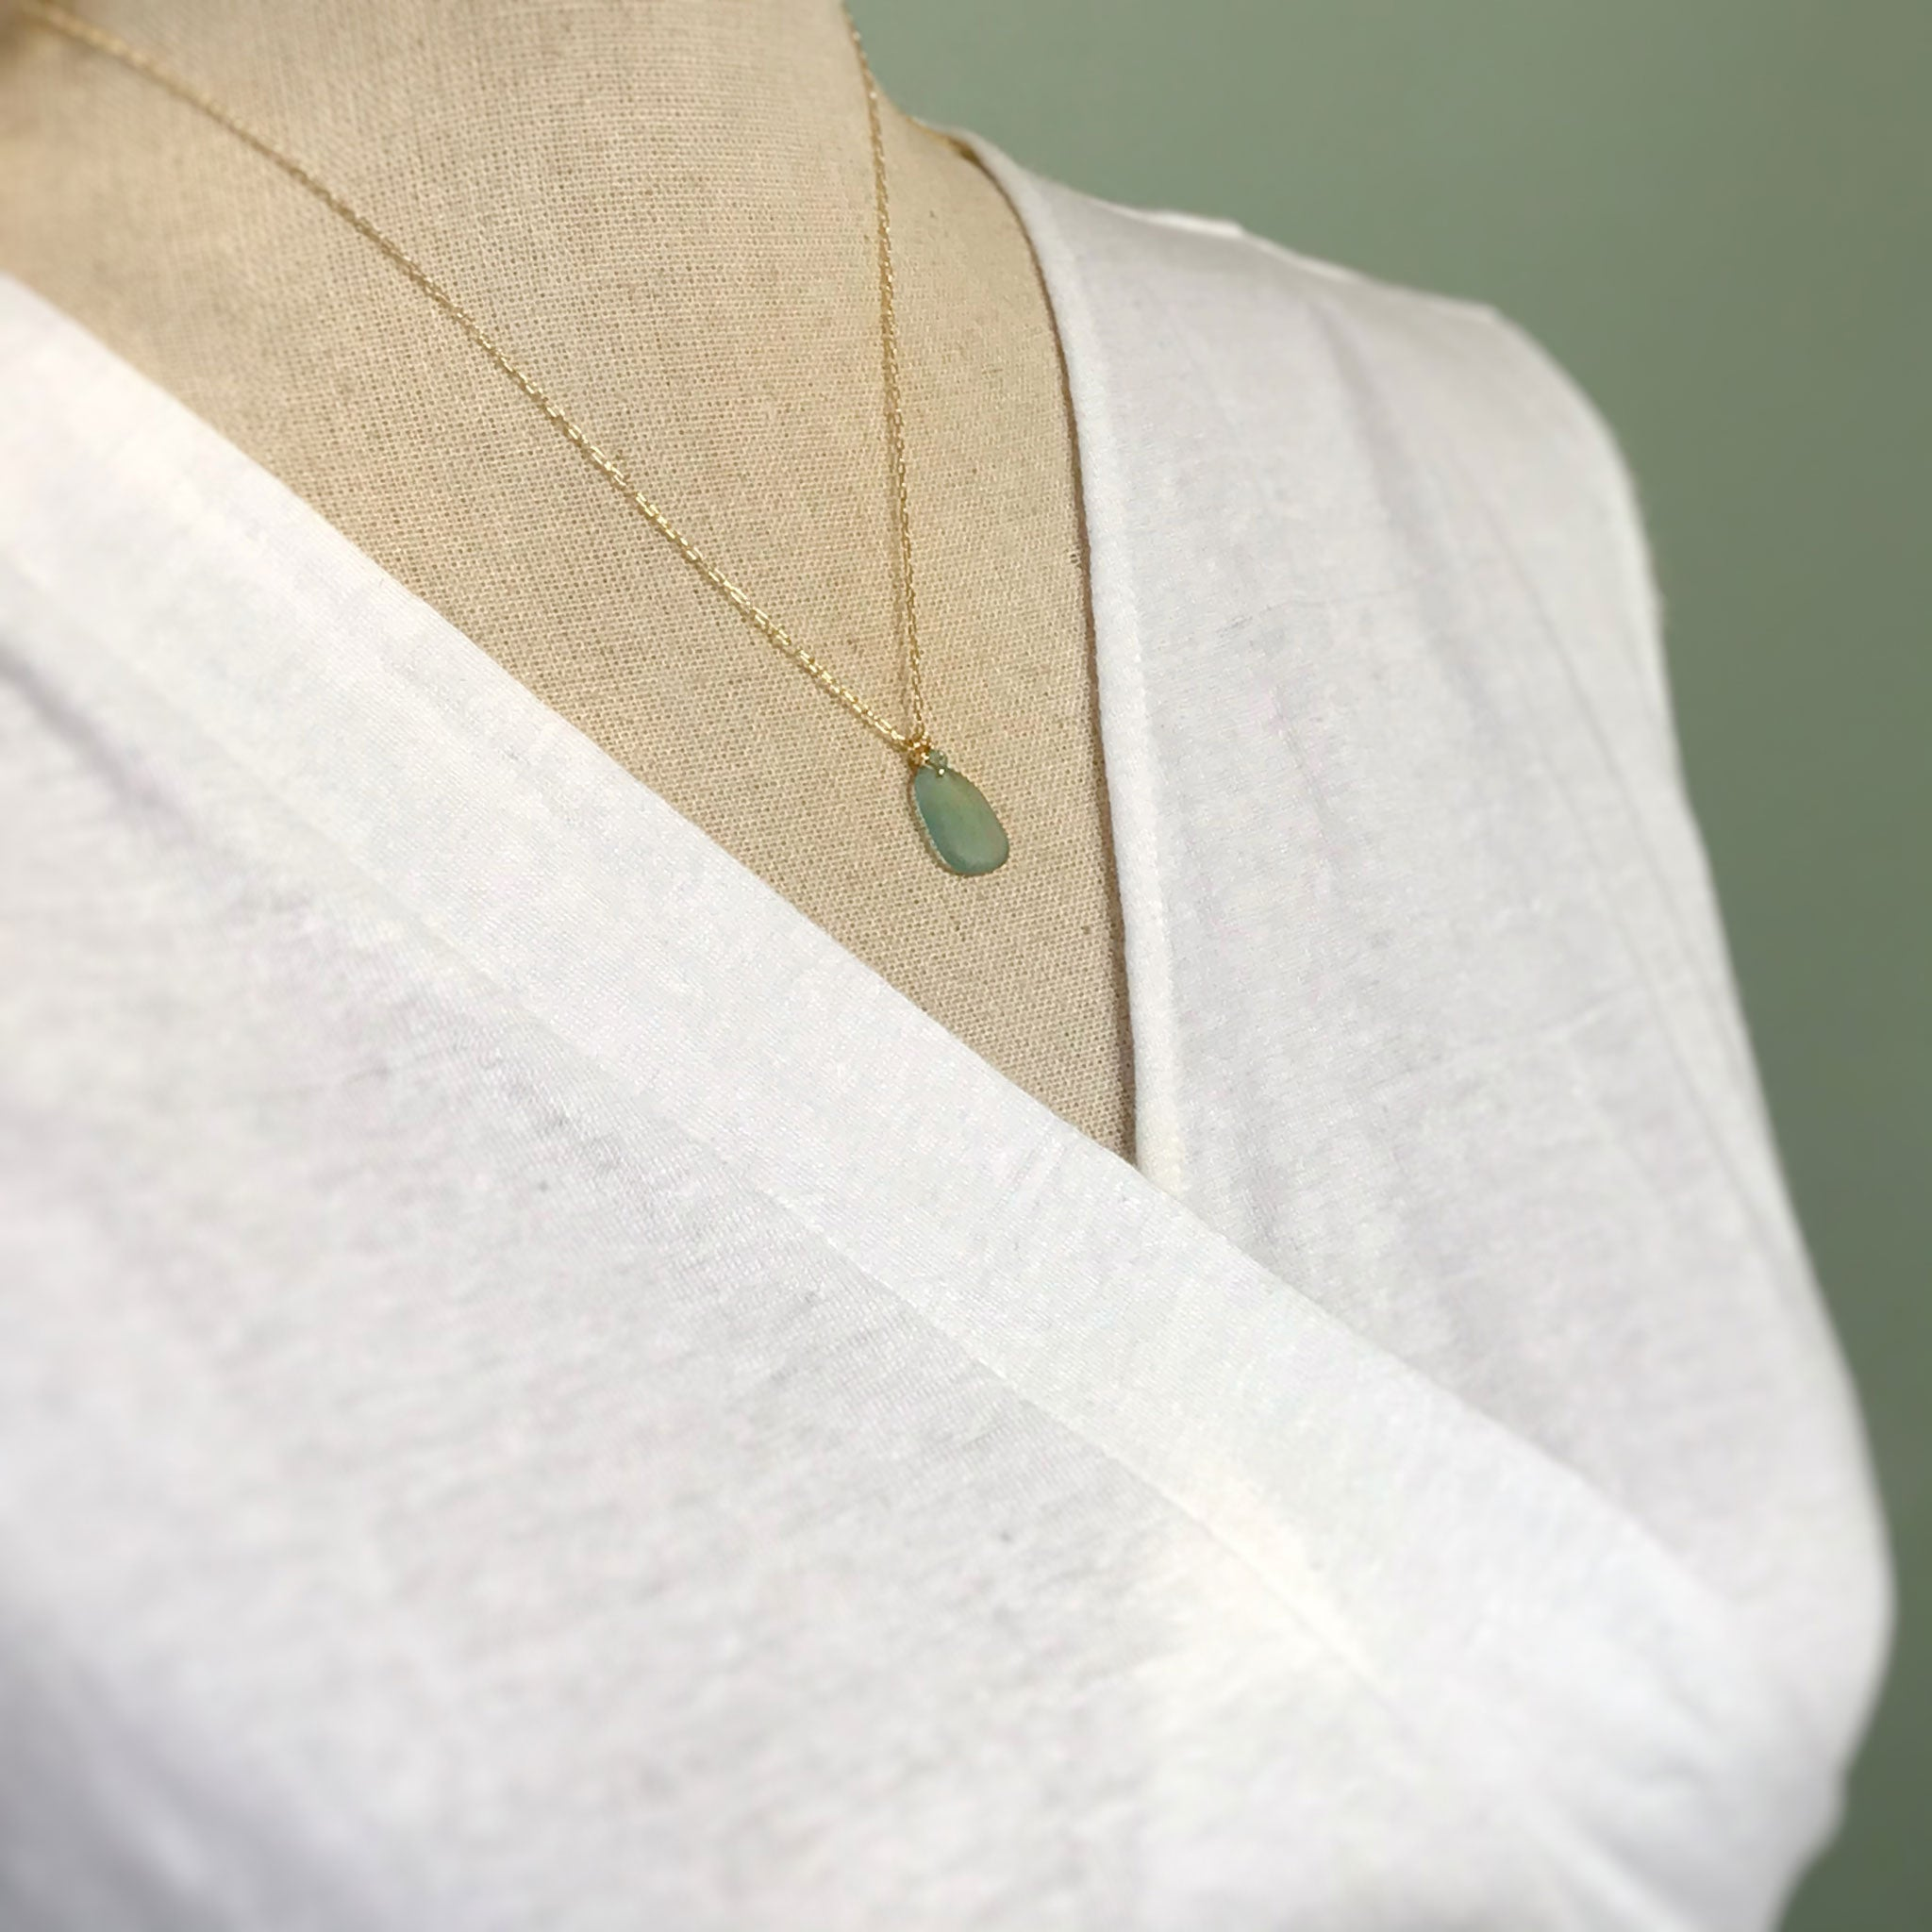 gold chain necklace with aqua seaglass and aquamarines stones kriket Broadhurst jewellery